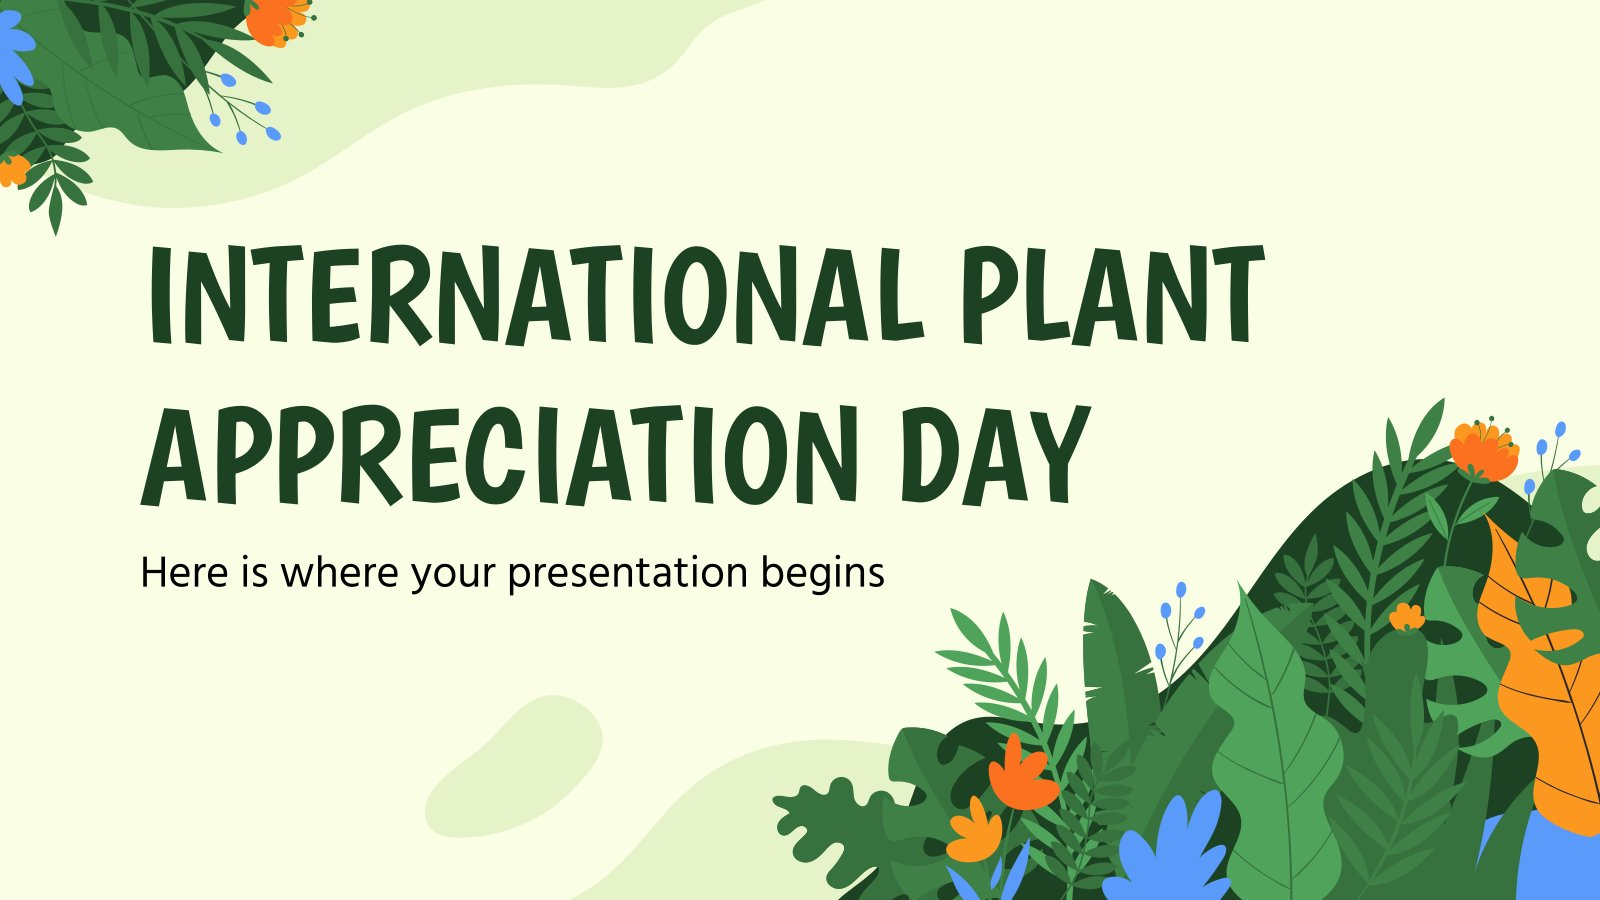 International Plant Appreciation Day presentation template